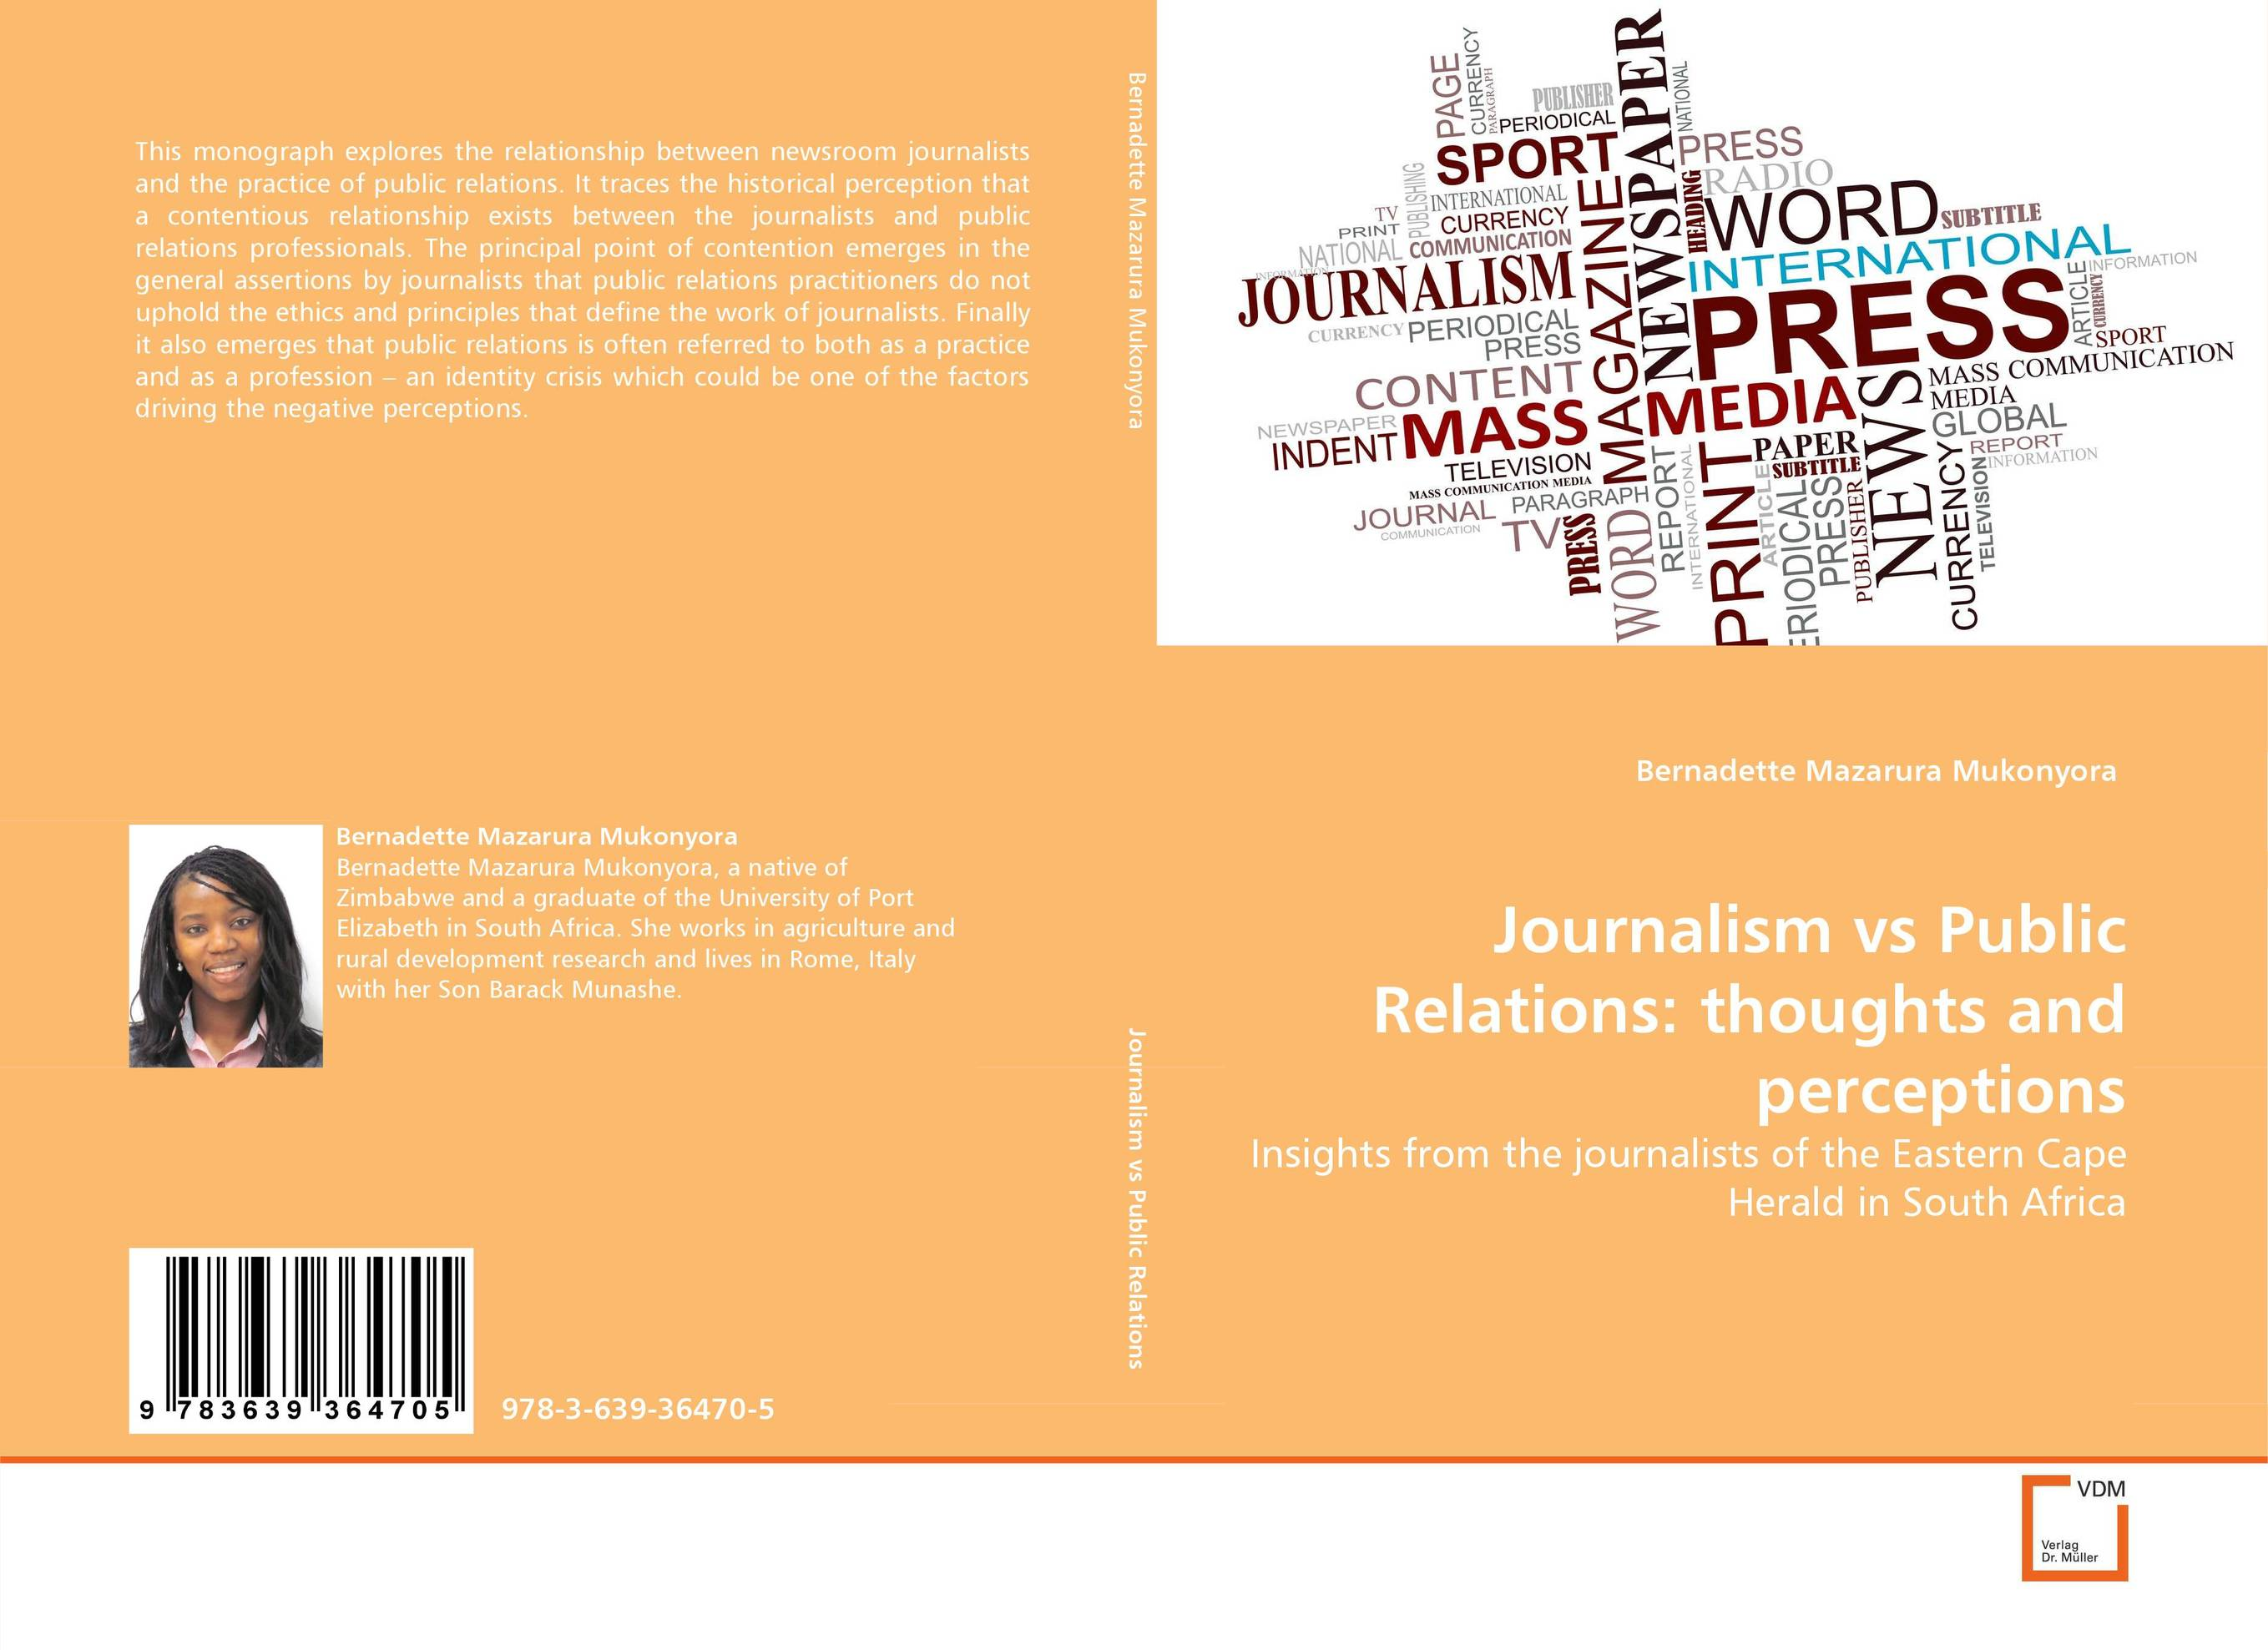 Journalism vs Public Relations: thoughts and perceptions